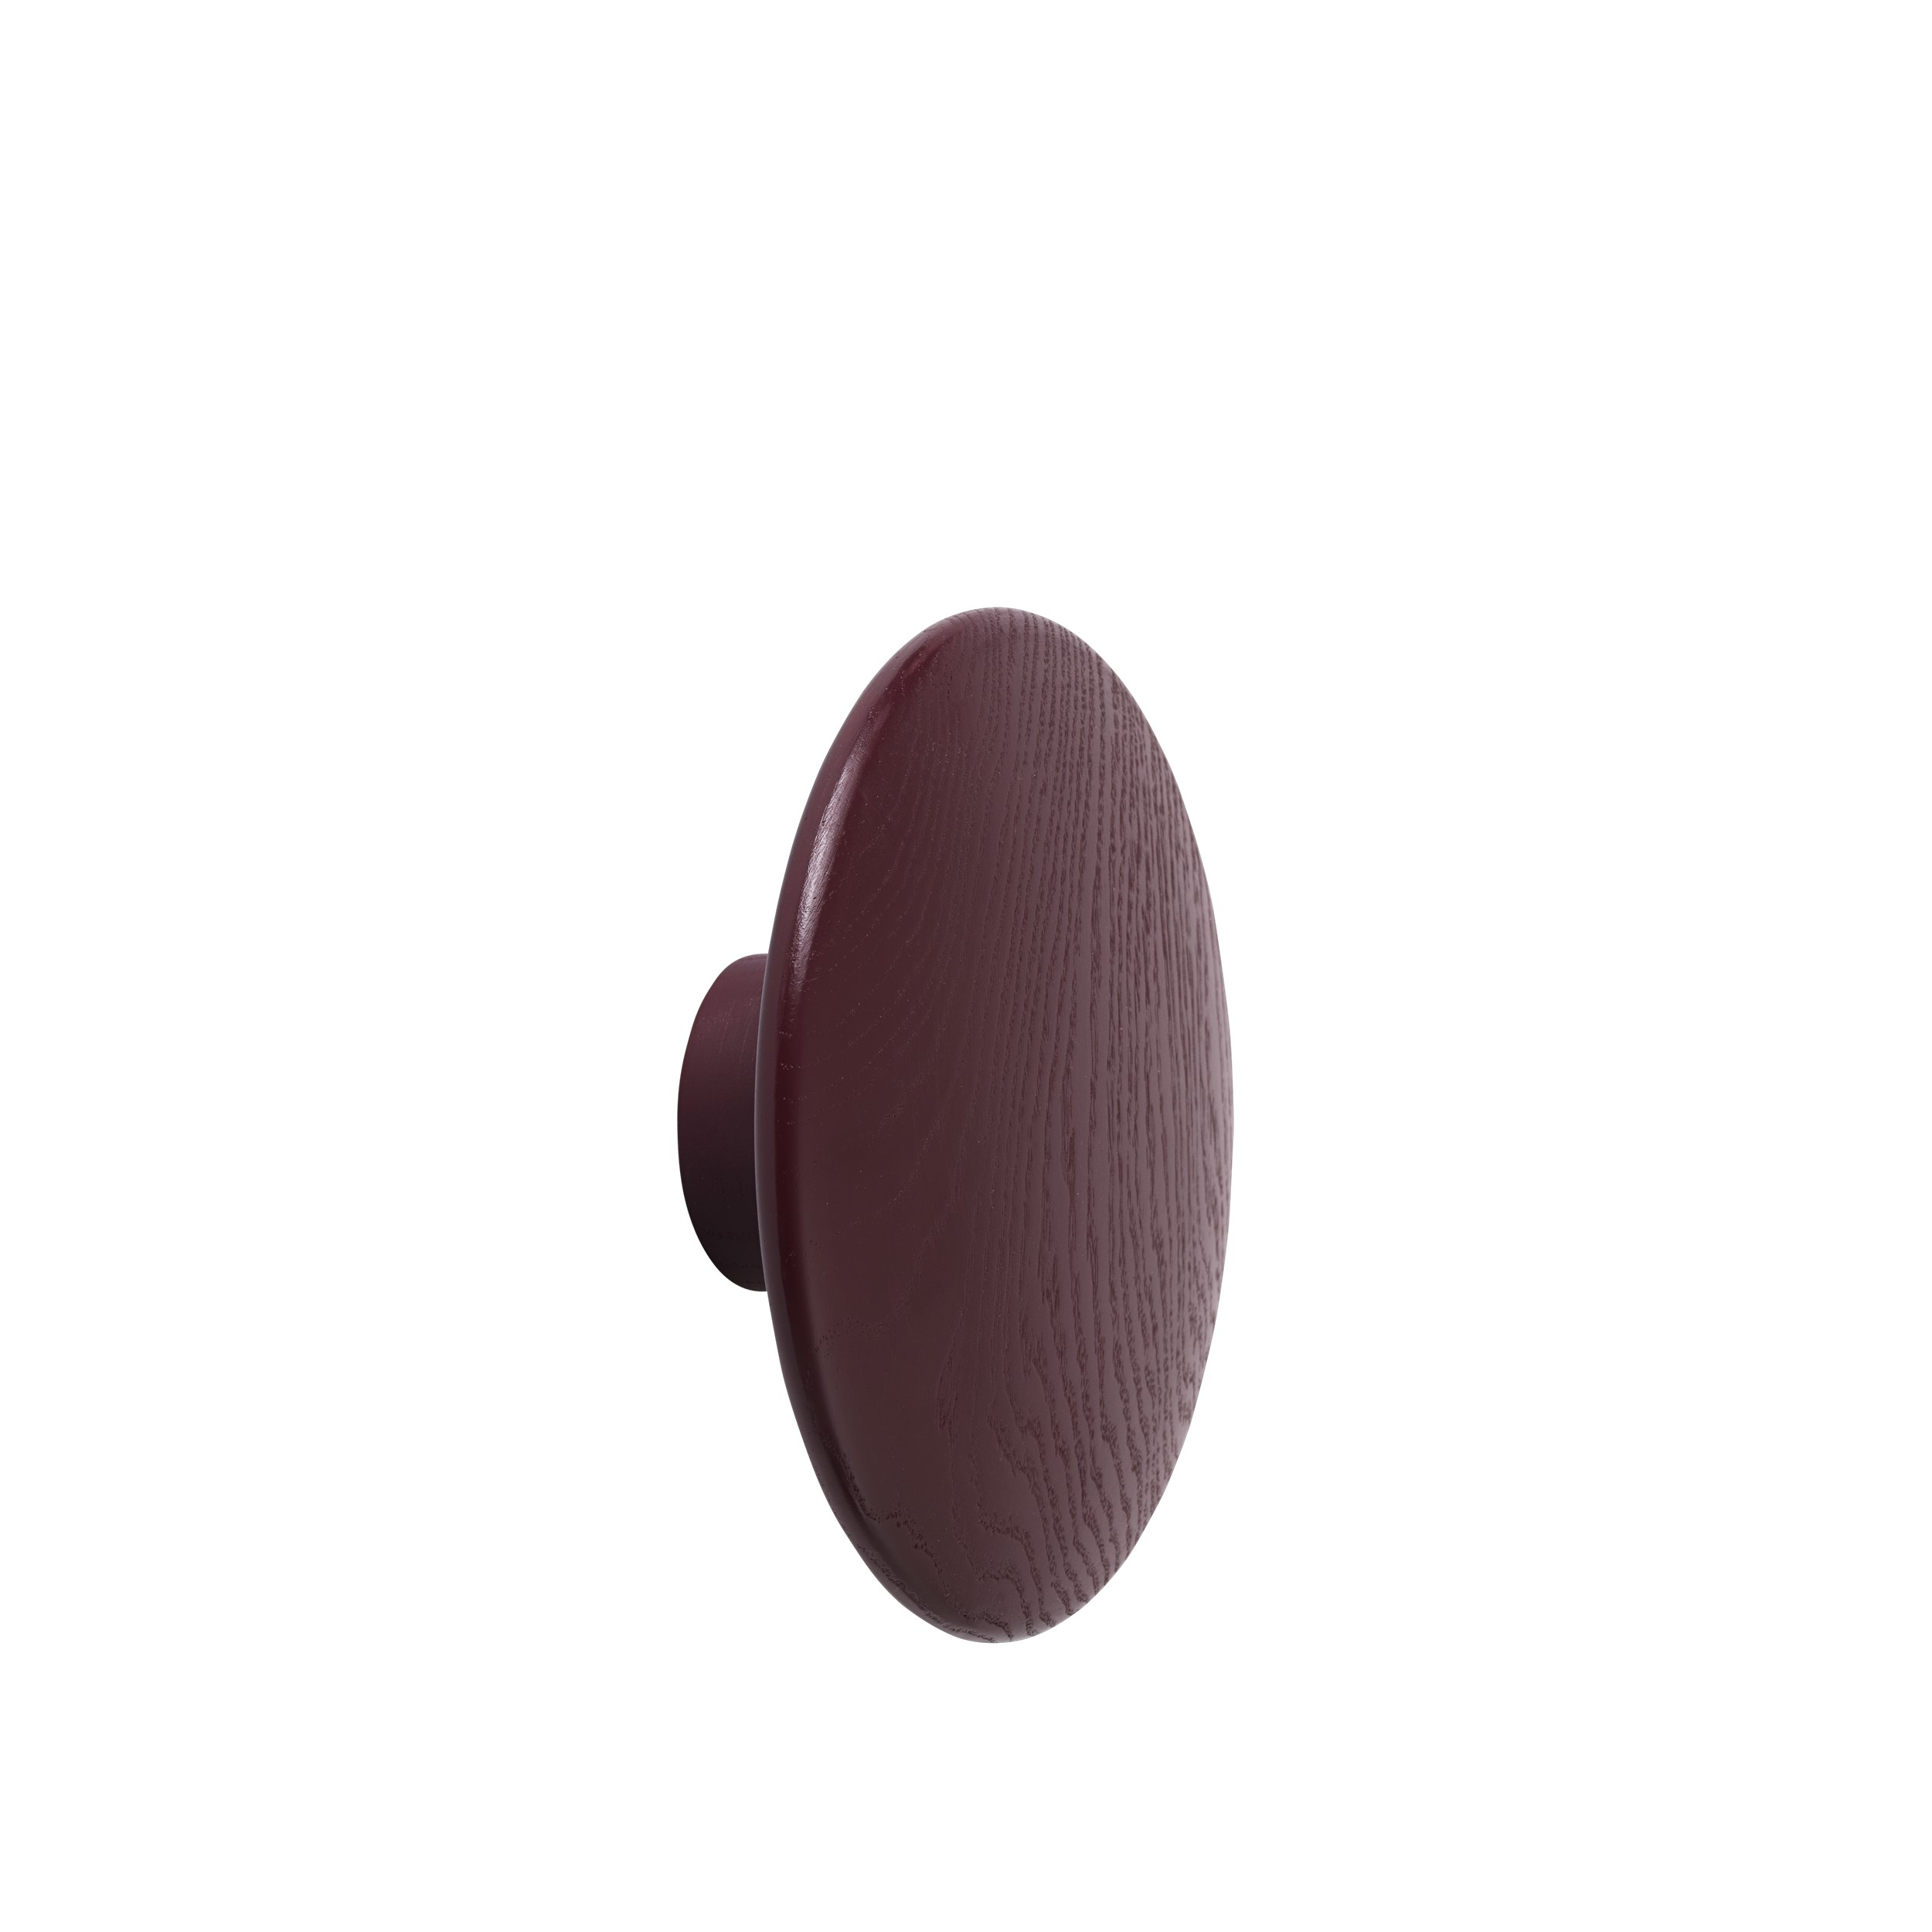 The Dots Muuto Burgundy Large